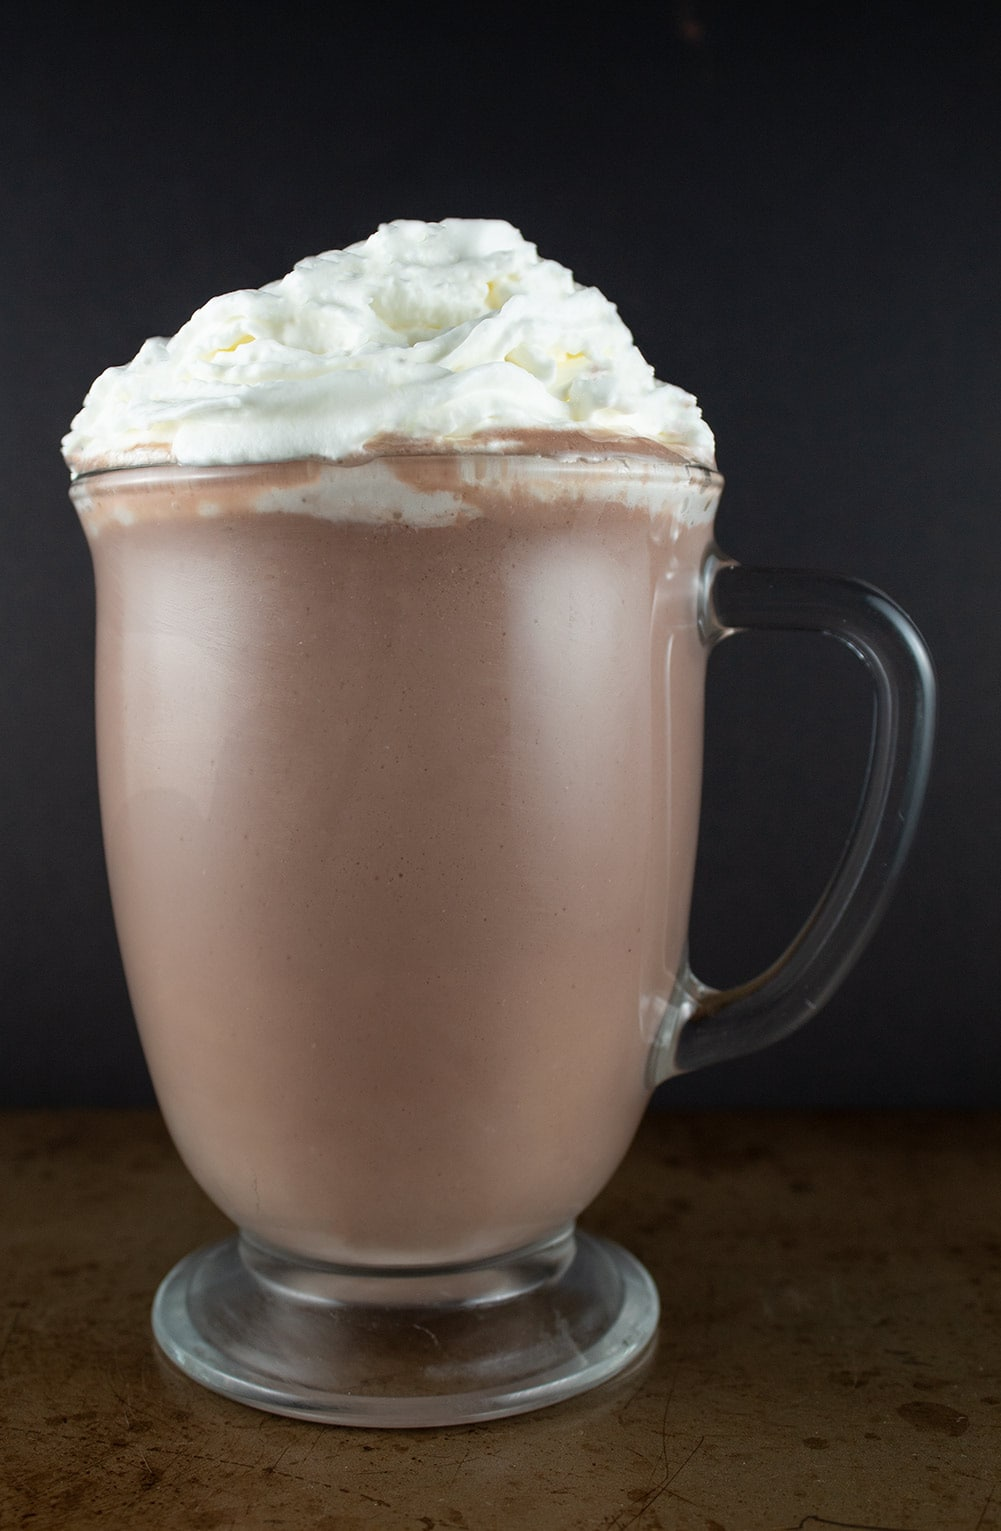 keto hot chocolate against a black background with a ton of whipped cream on top